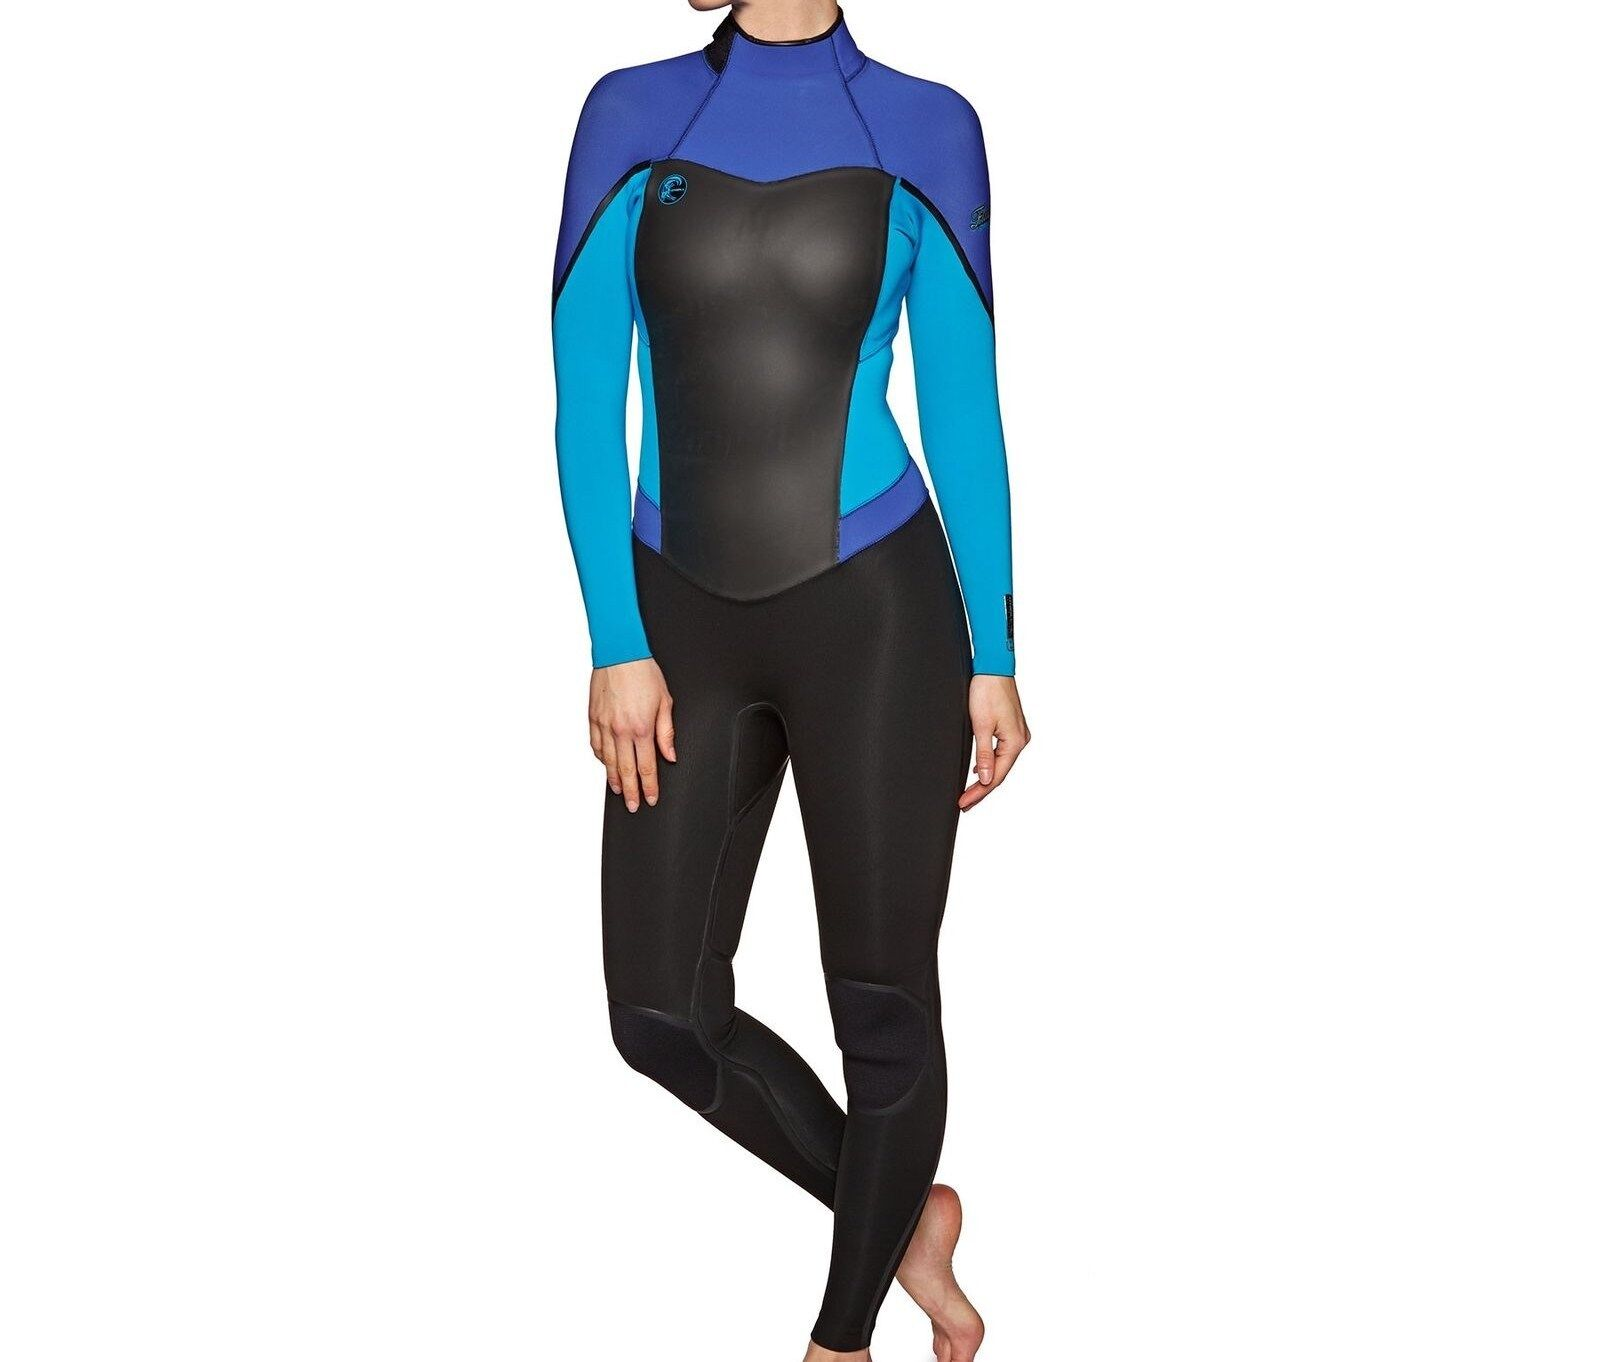 O'NEILL Women's 3 2 FLAIR Zen-Zip  Wetsuit - BLK SKY TAHITblue - 10 Tall - NWT  online outlet sale